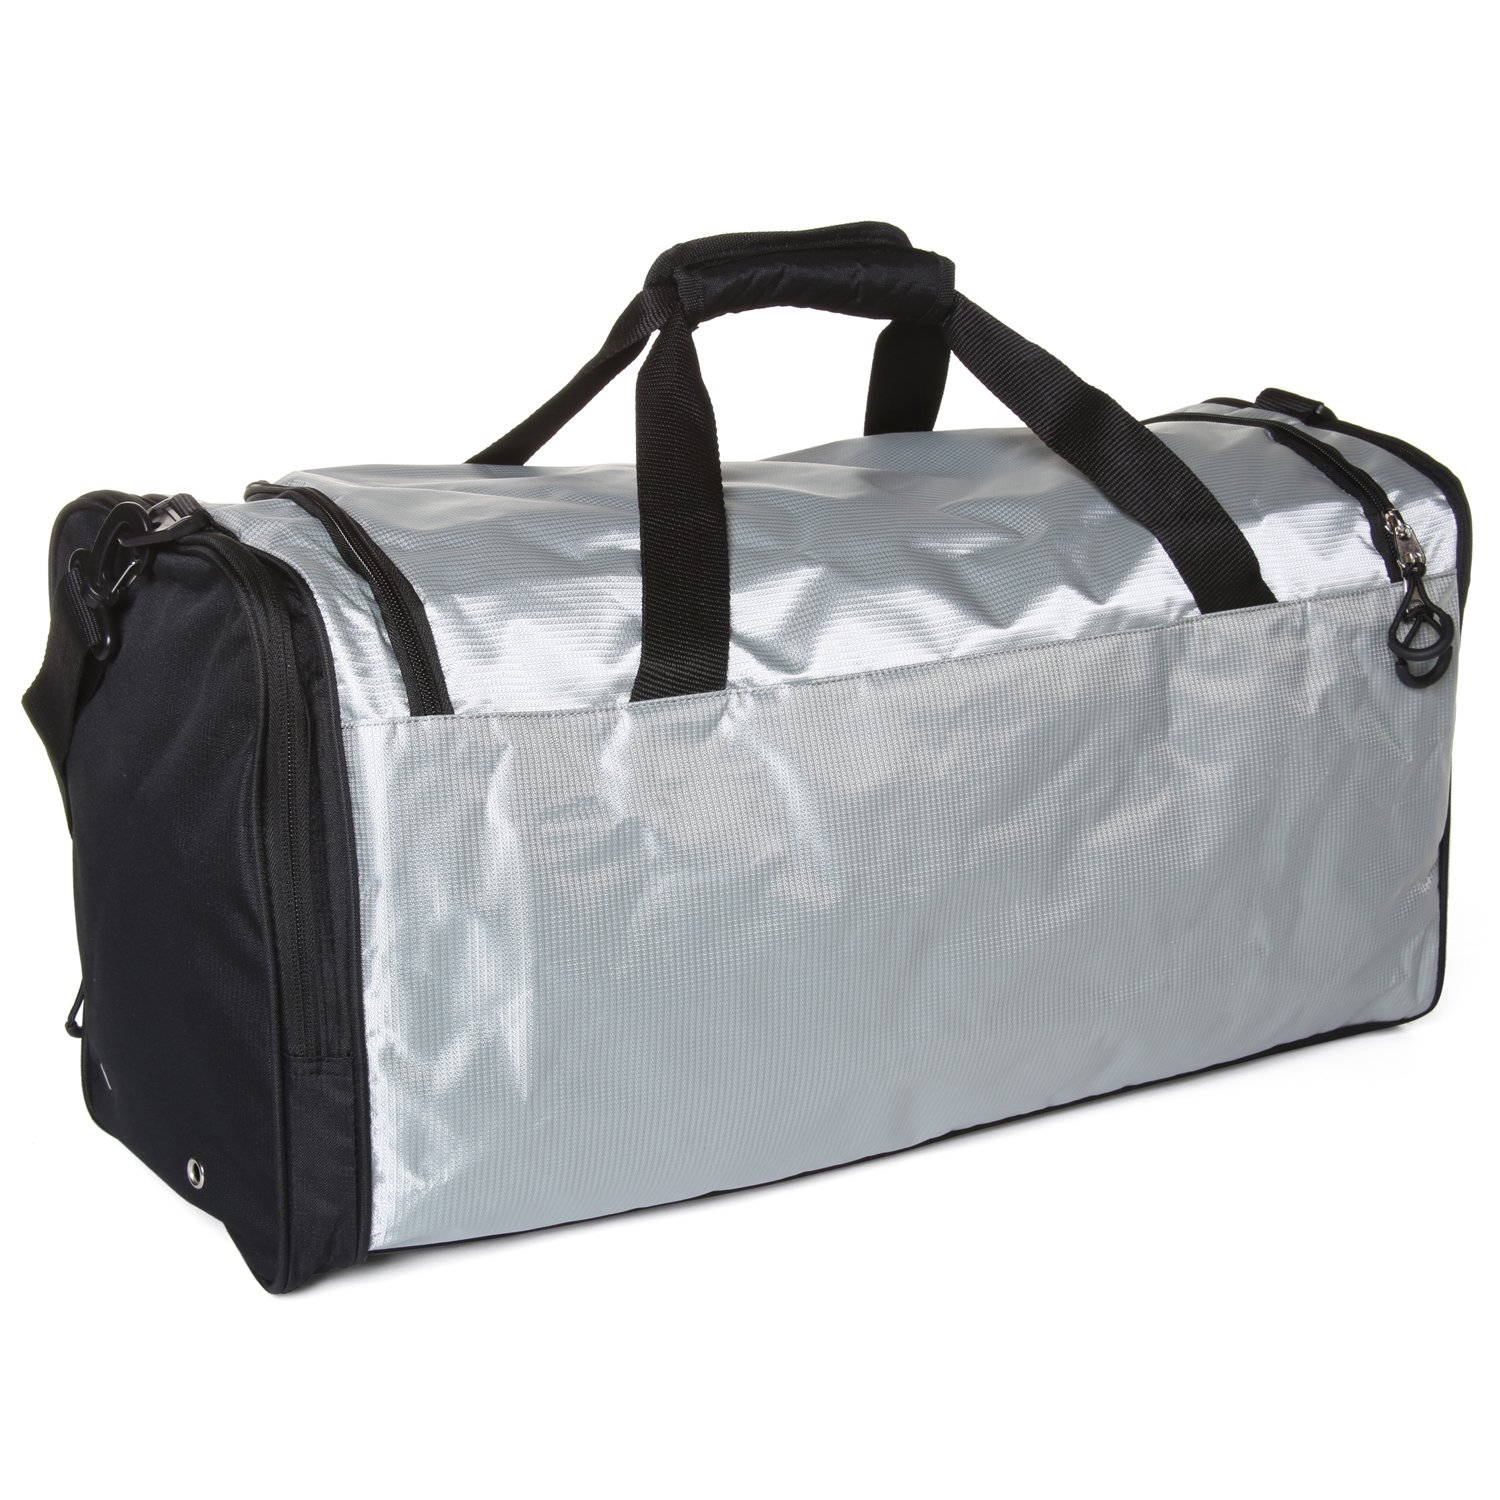 929d393088e7 Ivation Sports Gym Duffel Bag - 100% Water-Repellent Polyester - Ideal for  Gym, Fitness, Camping, Track, Traveling & More